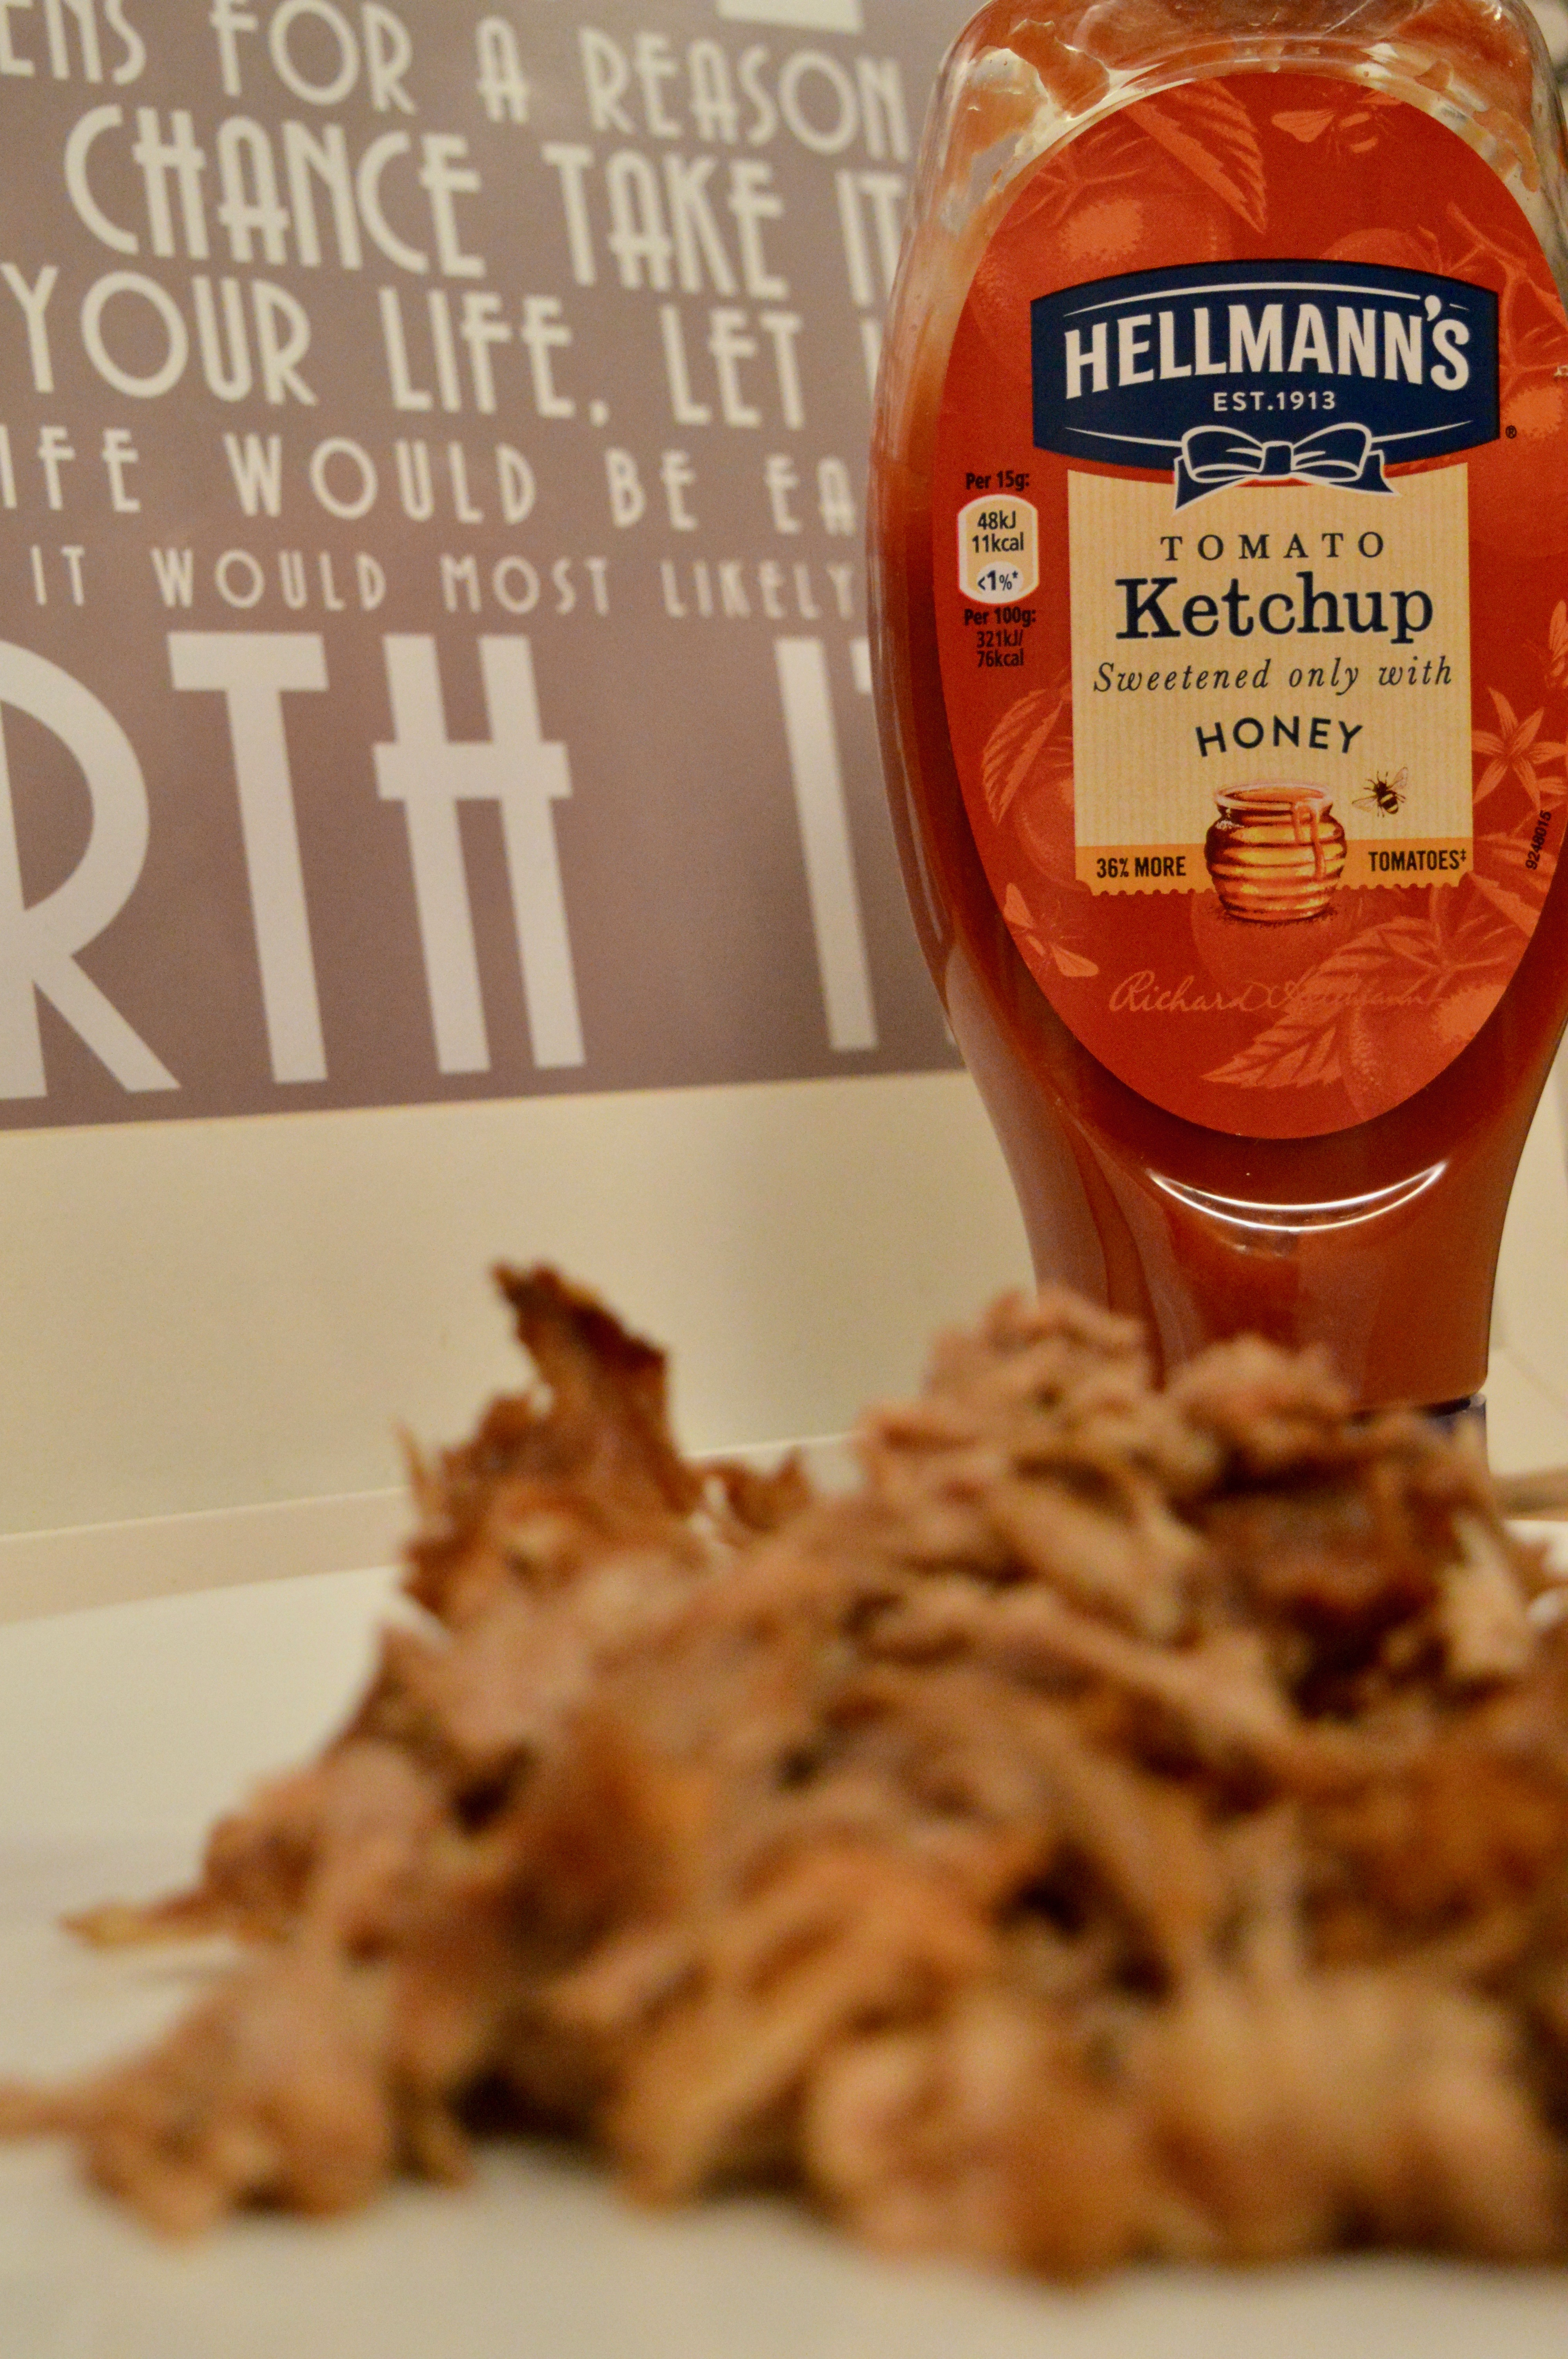 Hellmann's -tomato-ketchup-with-honey-pulled-pork-recipe-elle-blonde-luxury-lifestyle-blog